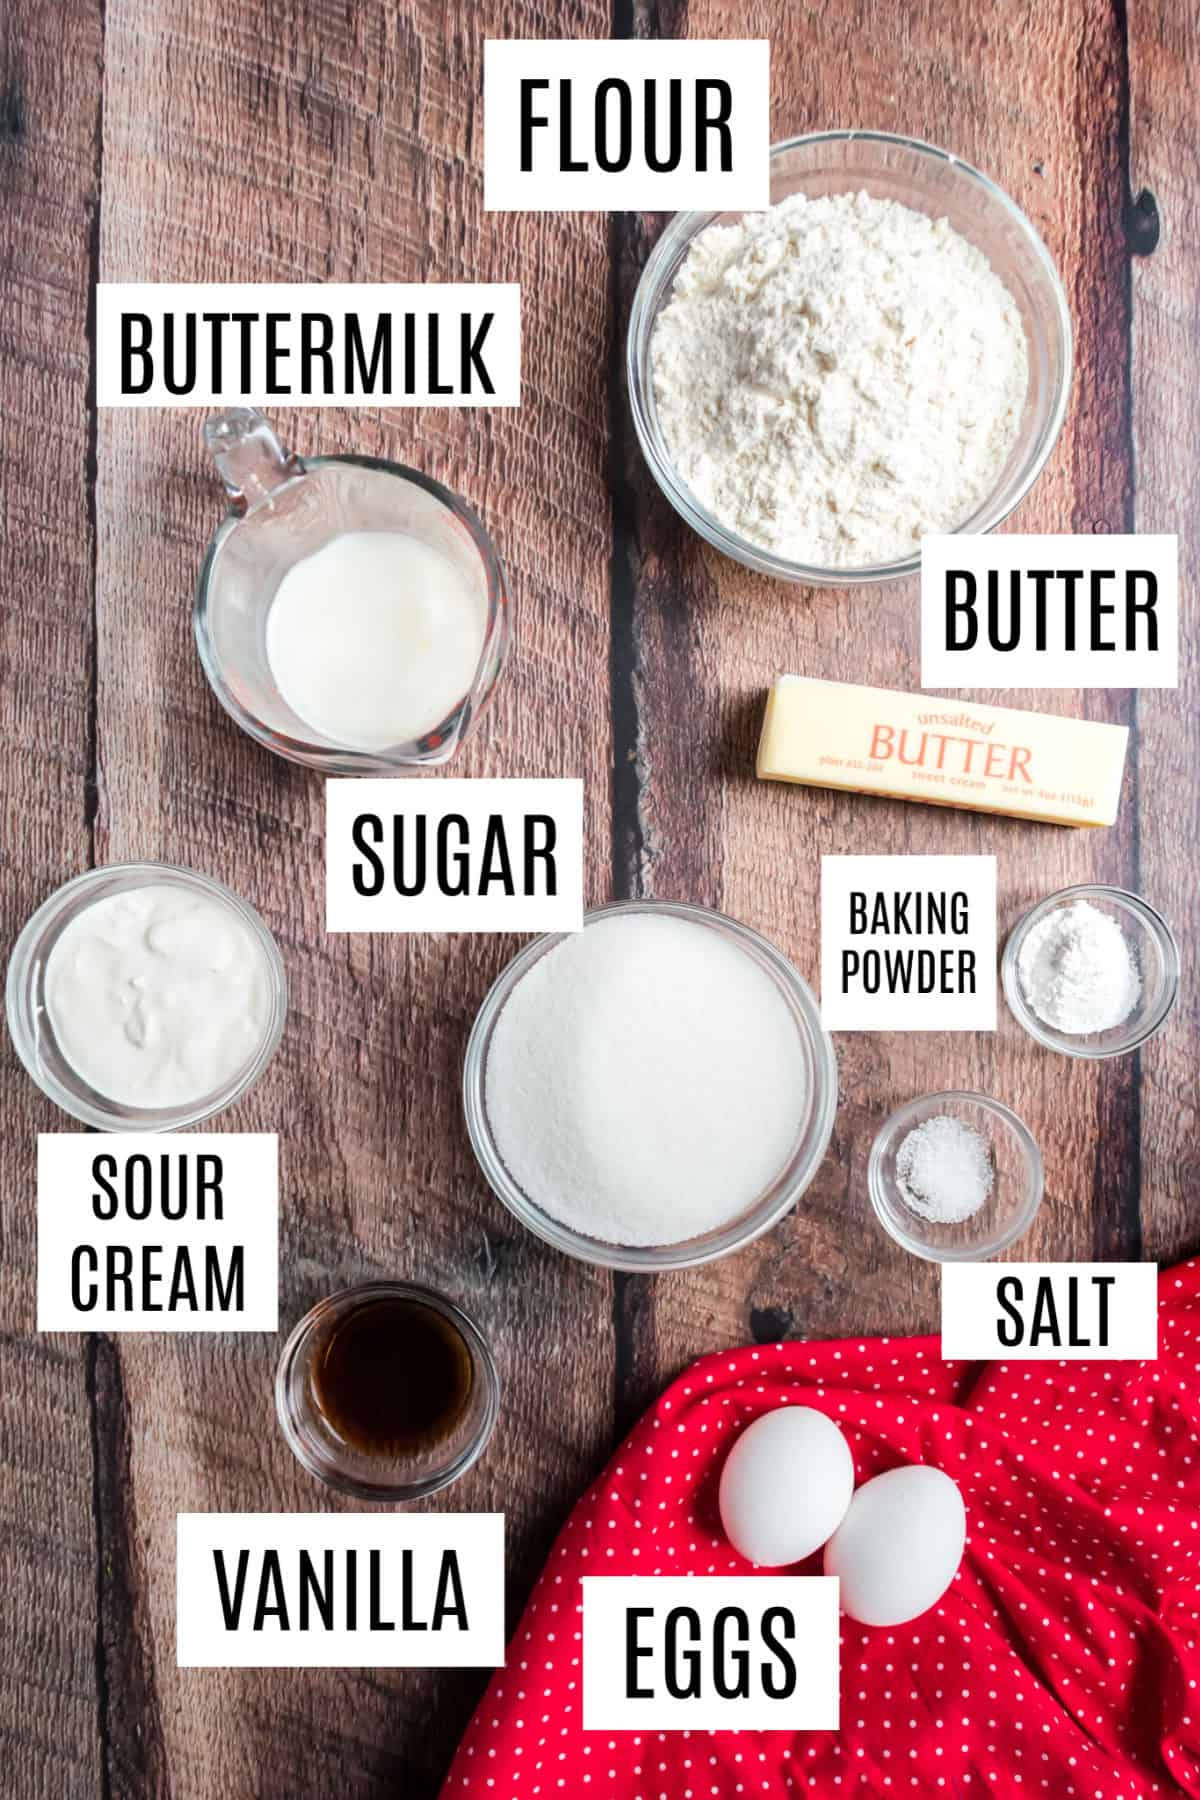 Ingredients needed to make homemade yellow cupcakes.